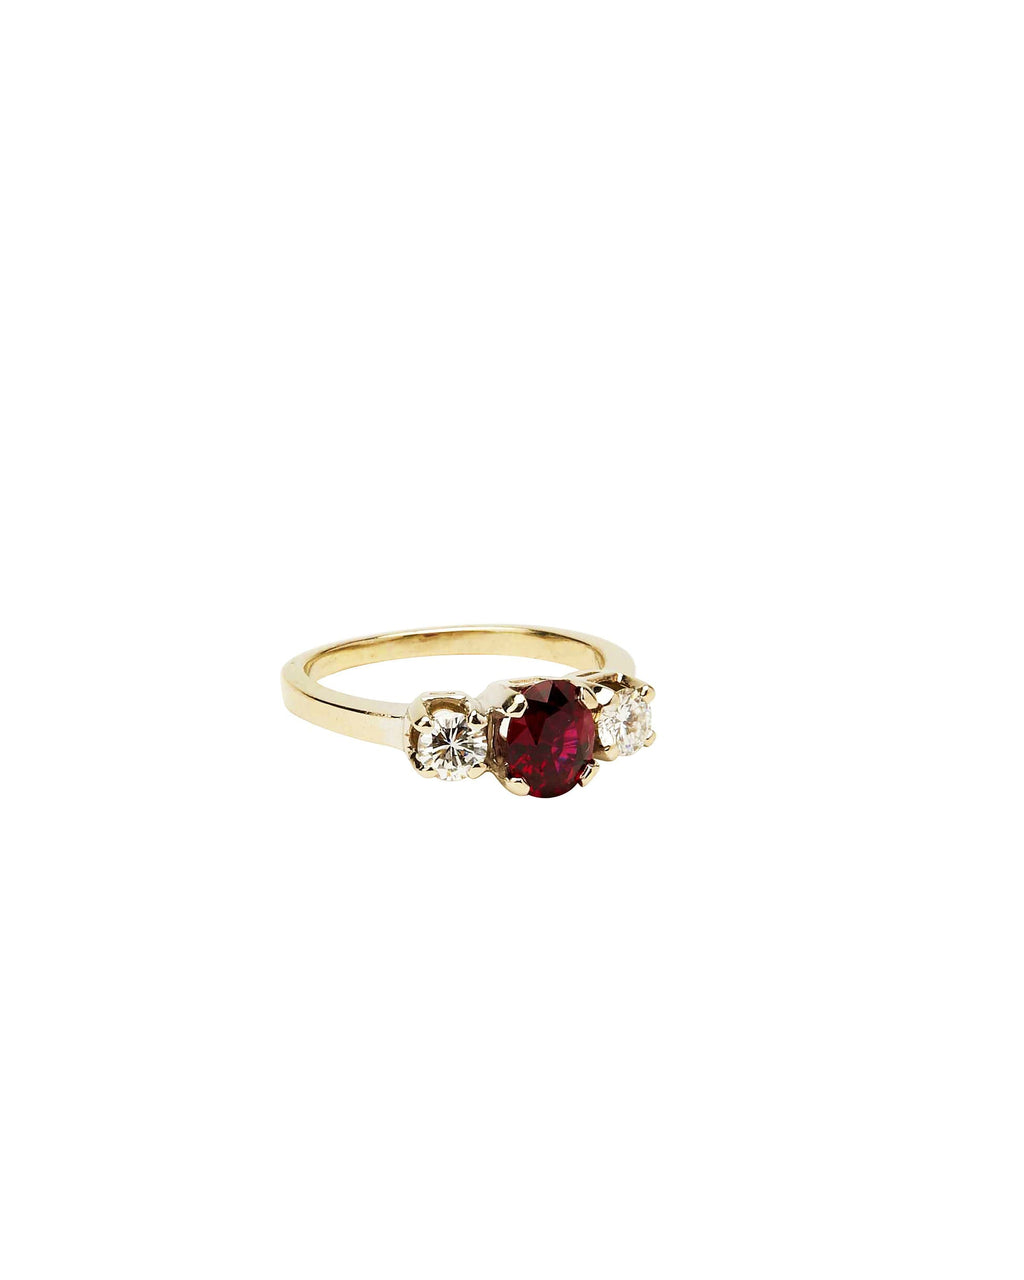 Ruby and Diamond on 14k White Gold